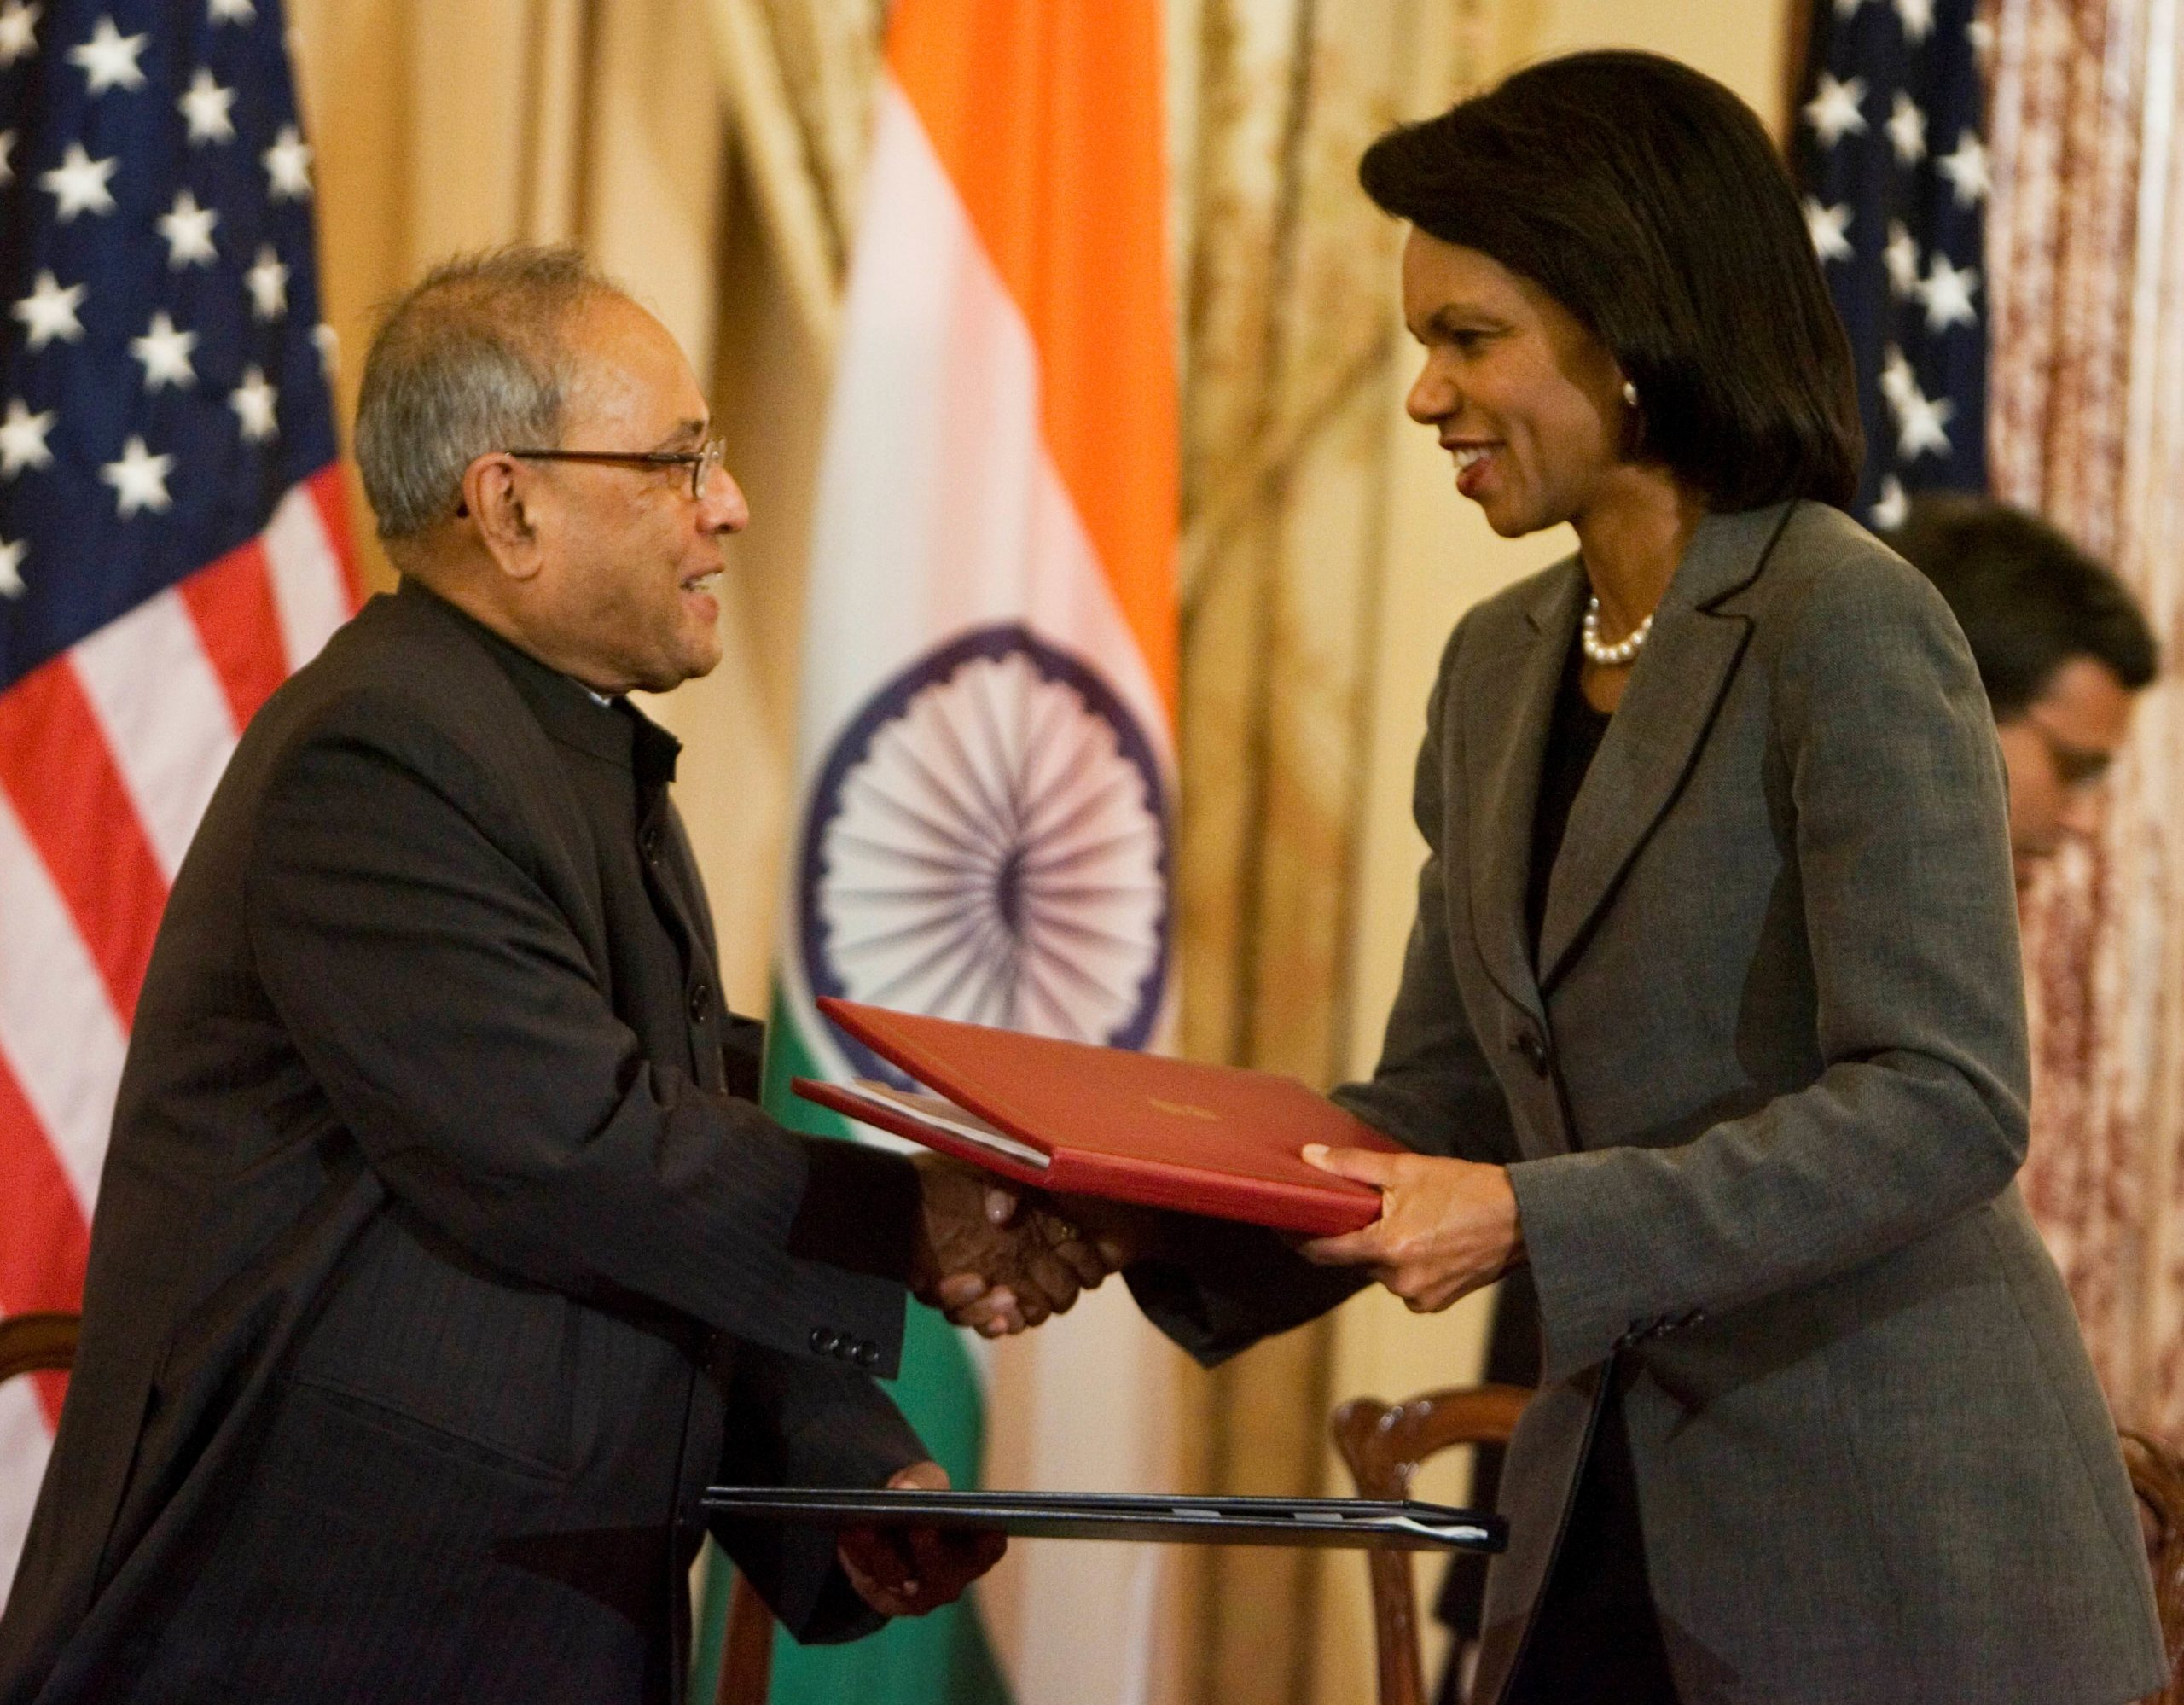 Secretary Rice and Indian Foreign Minister Pranab Mukherjee, shake hands after signing the U.S.-India Agreement for Cooperation Concerning Peaceful Uses of Nuclear Energy at the State Department, Oct. 10, 2008.